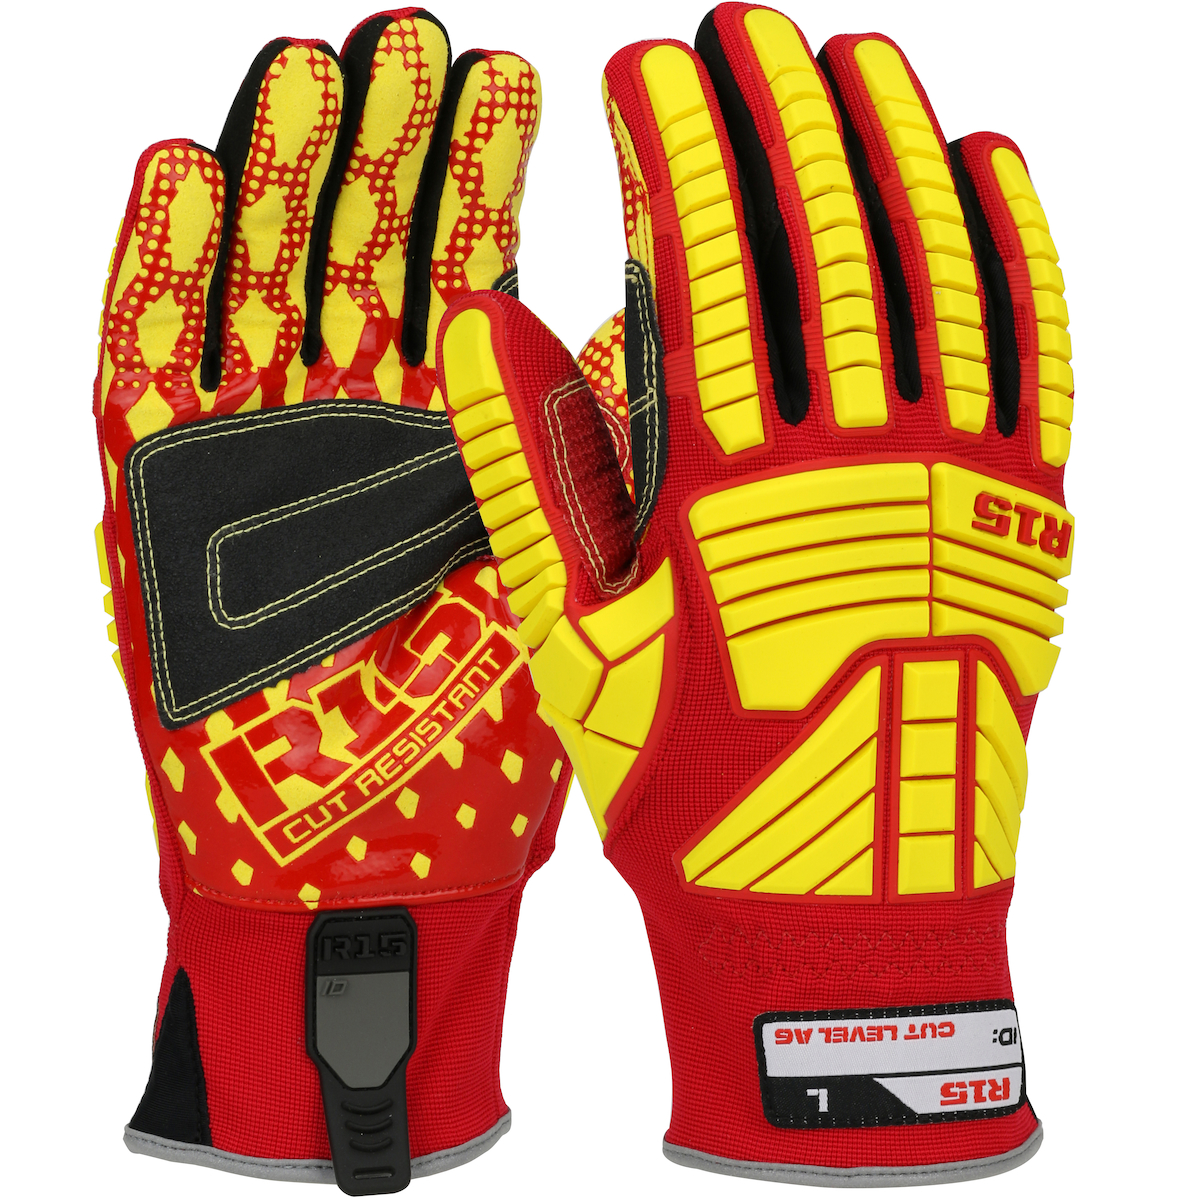 West Chester 87015/2X 87015 R15™ Rigger Gloves, 2X-Large, Synthetic Leather, Red/Yellow, Band Top Cuff